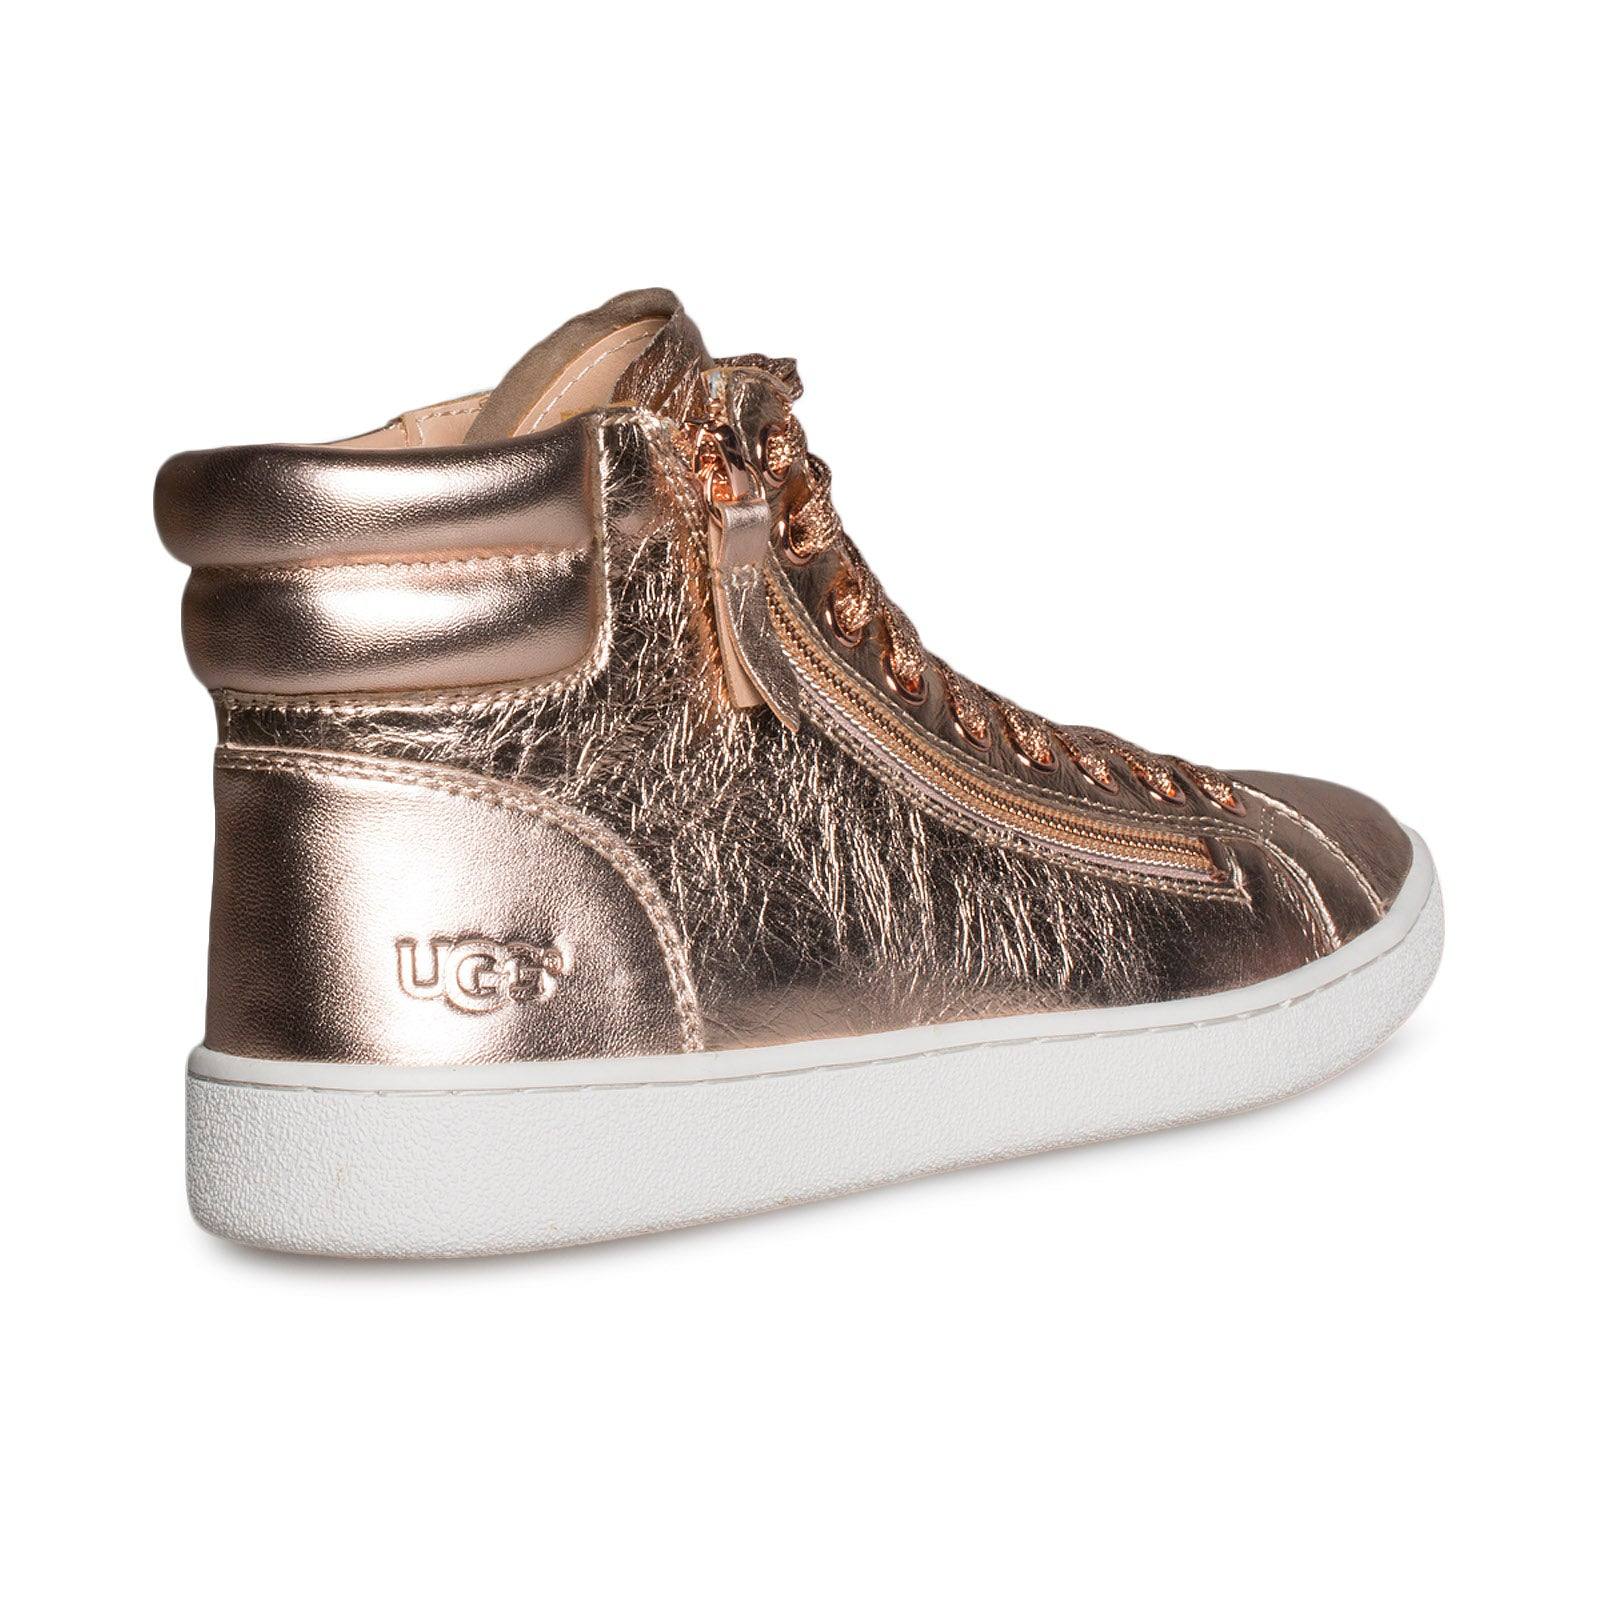 UGG Olive Metallic Red Gold Sneakers